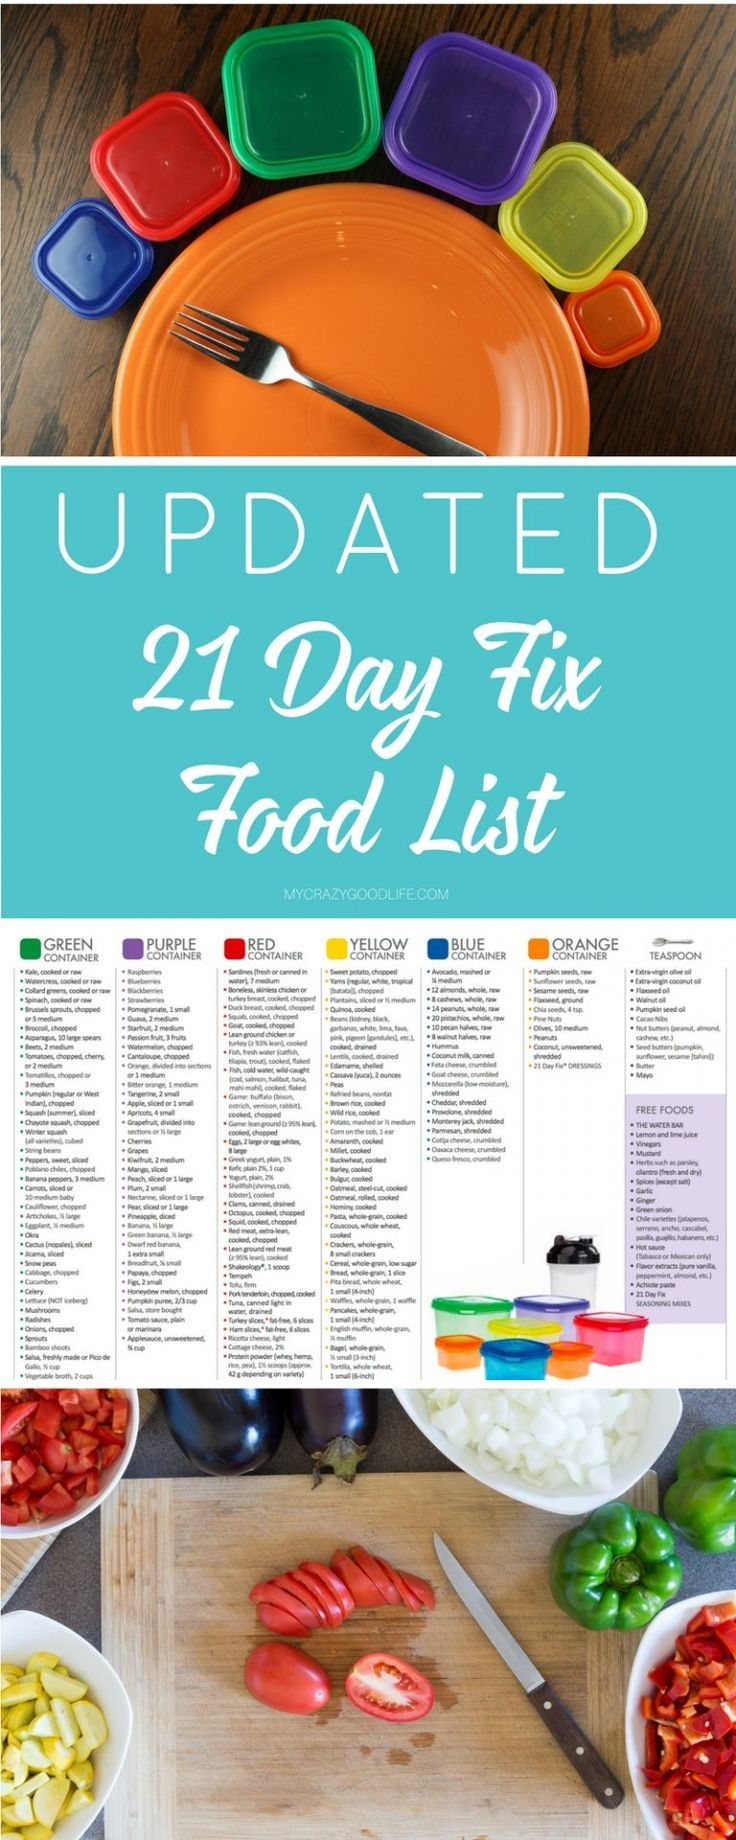 Updated 21 Day Fix Food List 21 Day Fix Foods Food